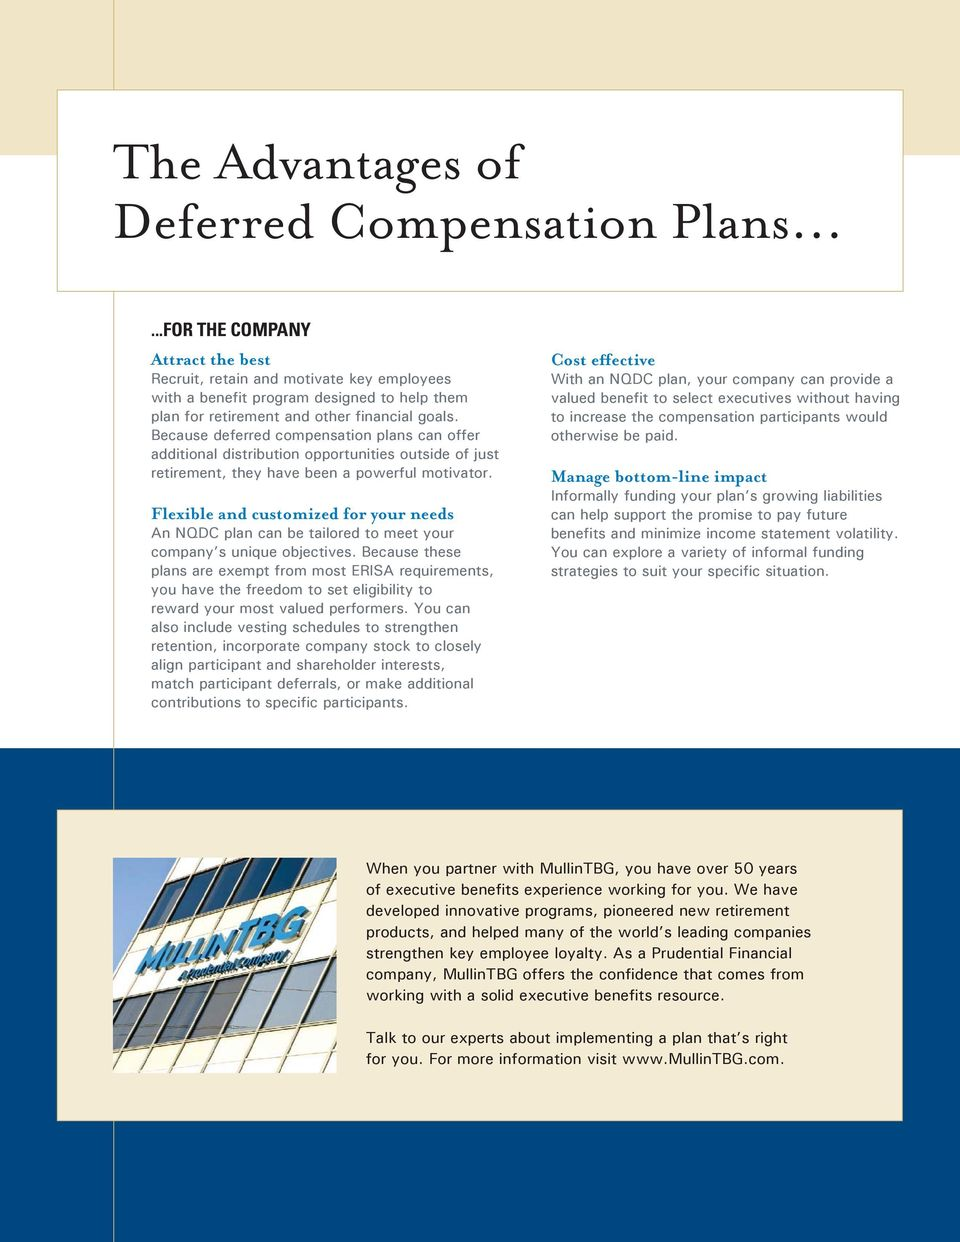 Because deferred compensation plans can offer additional distribution opportunities outside of just retirement, they have been a powerful motivator.